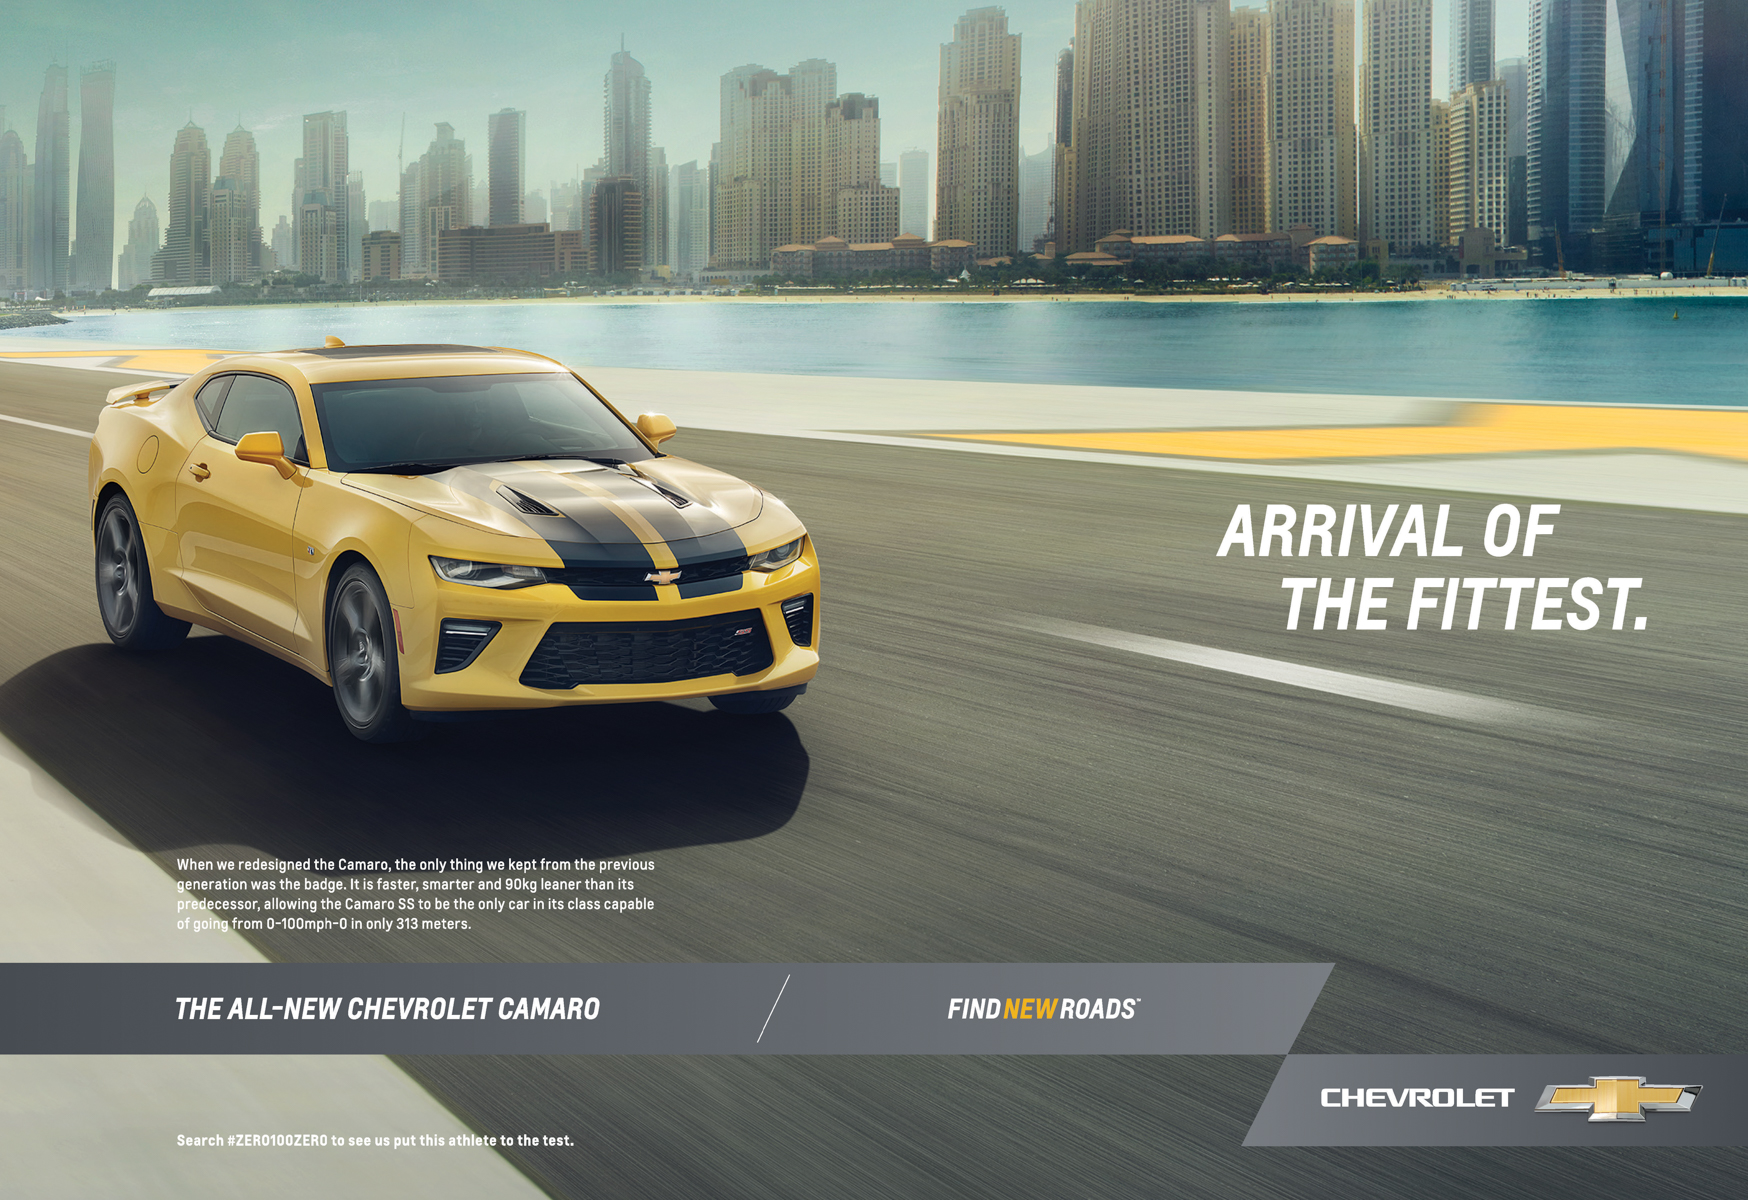 Chevrolet Camaro | Arrival of the Fittest